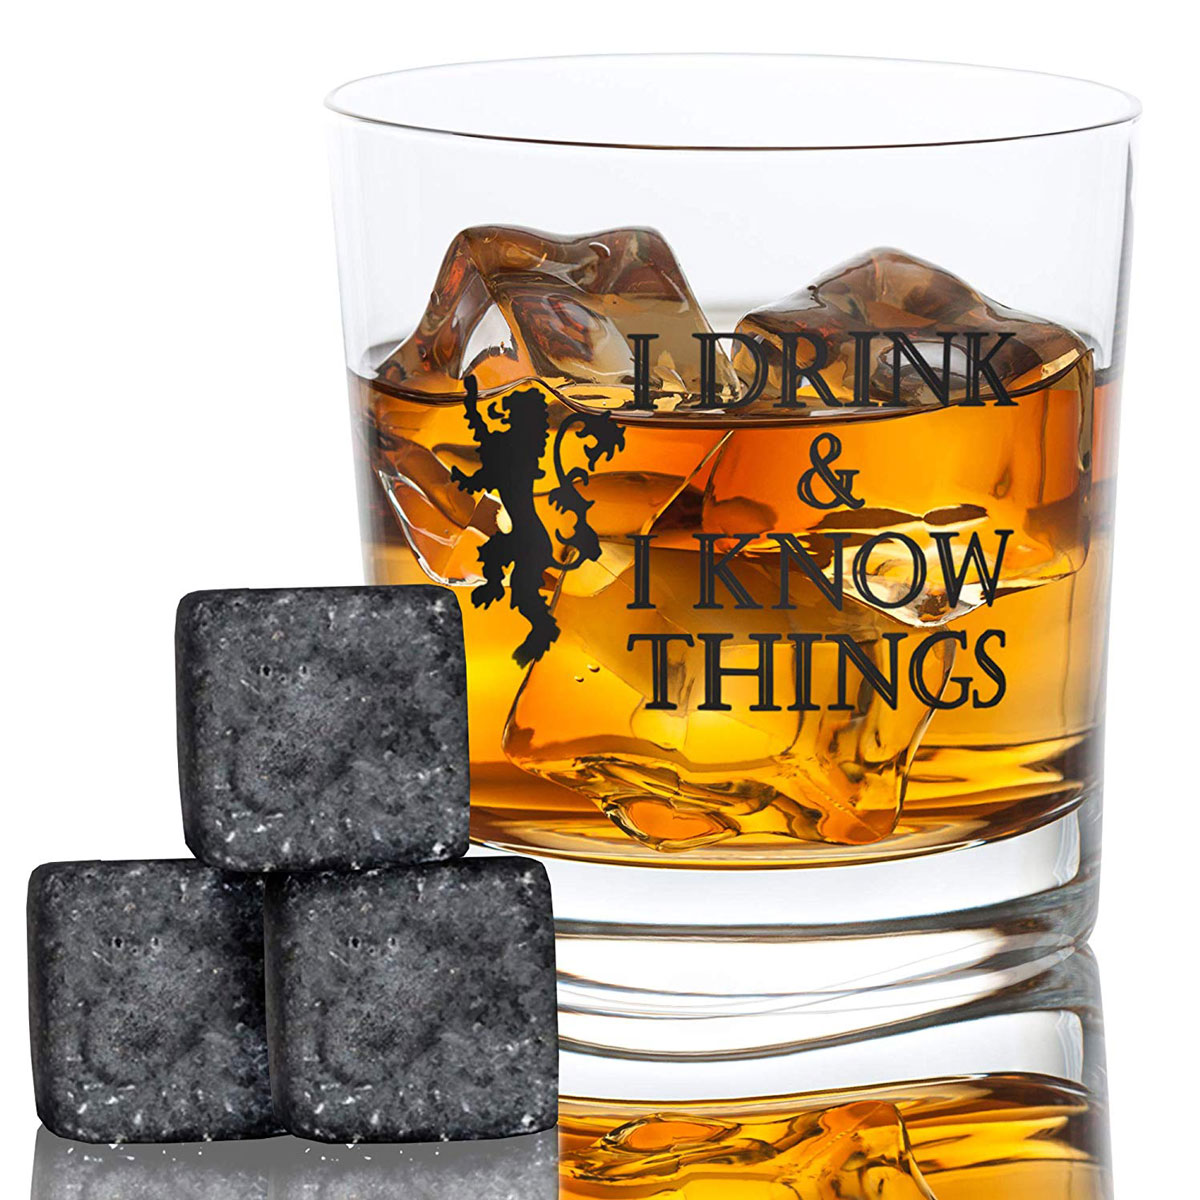 Whiskey glass and whiskey stones